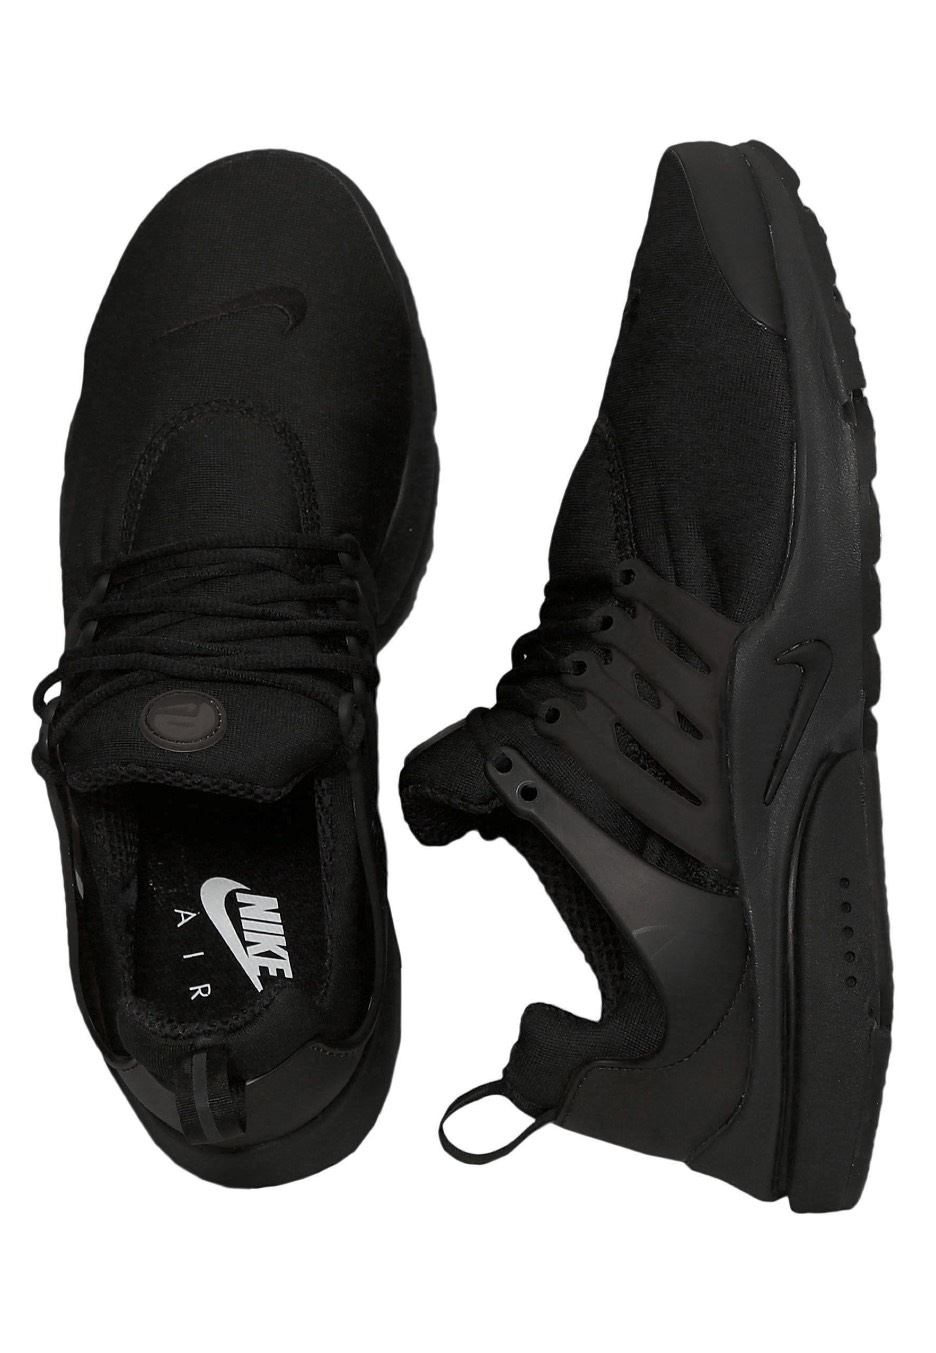 36f27cbd0864 Nike - Air Presto Essential Black Black Black - Shoes - Impericon.com  Worldwide